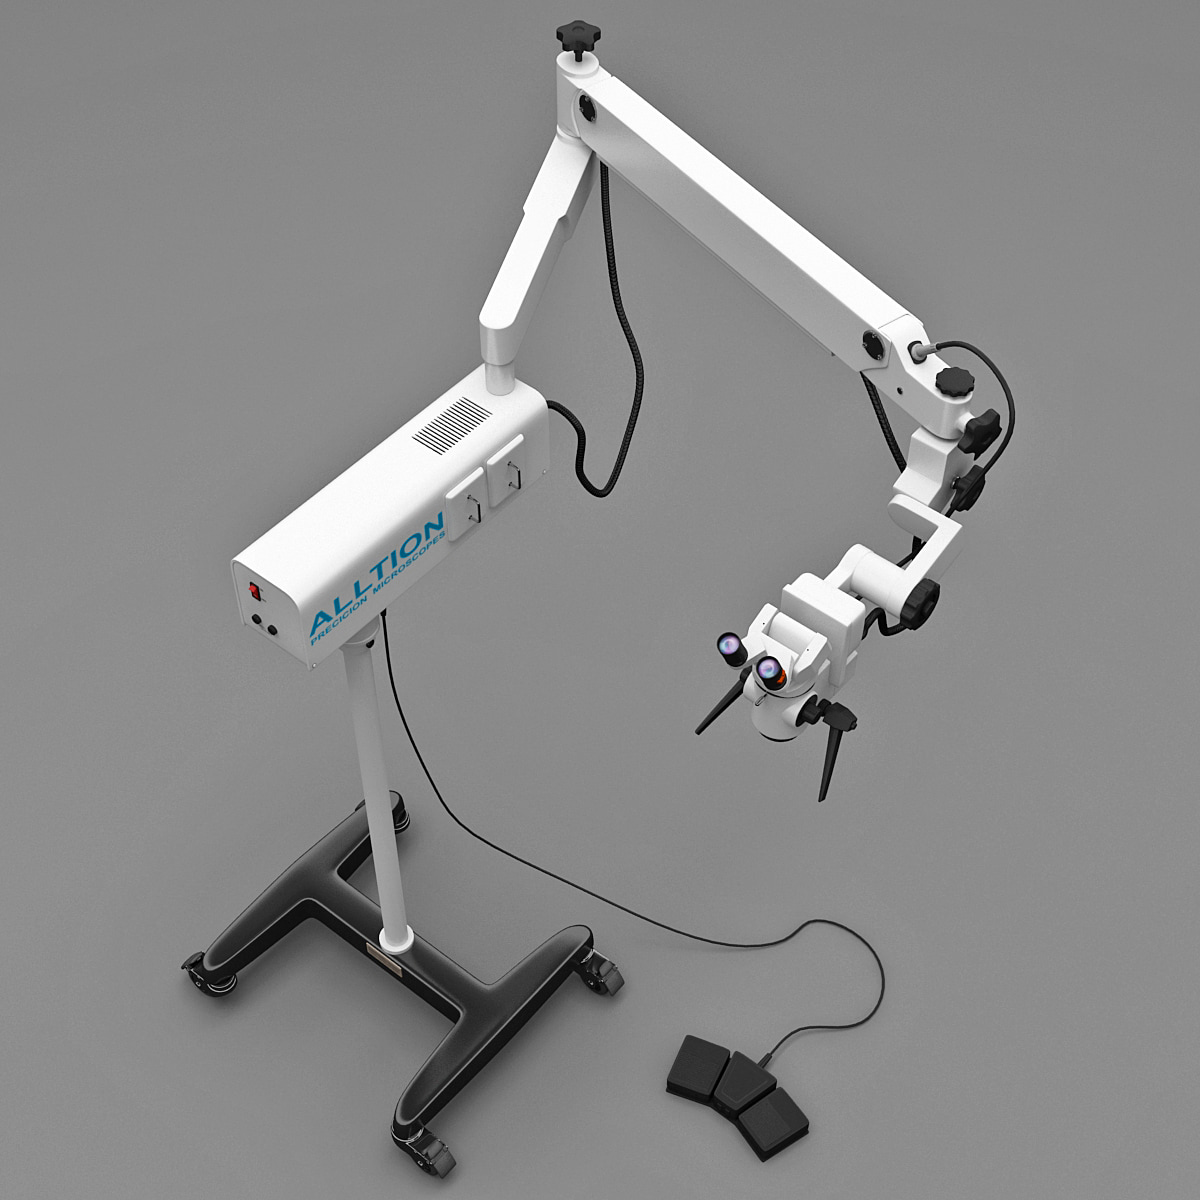 Surgical_Microscope_AM_P6000_0001.jpg